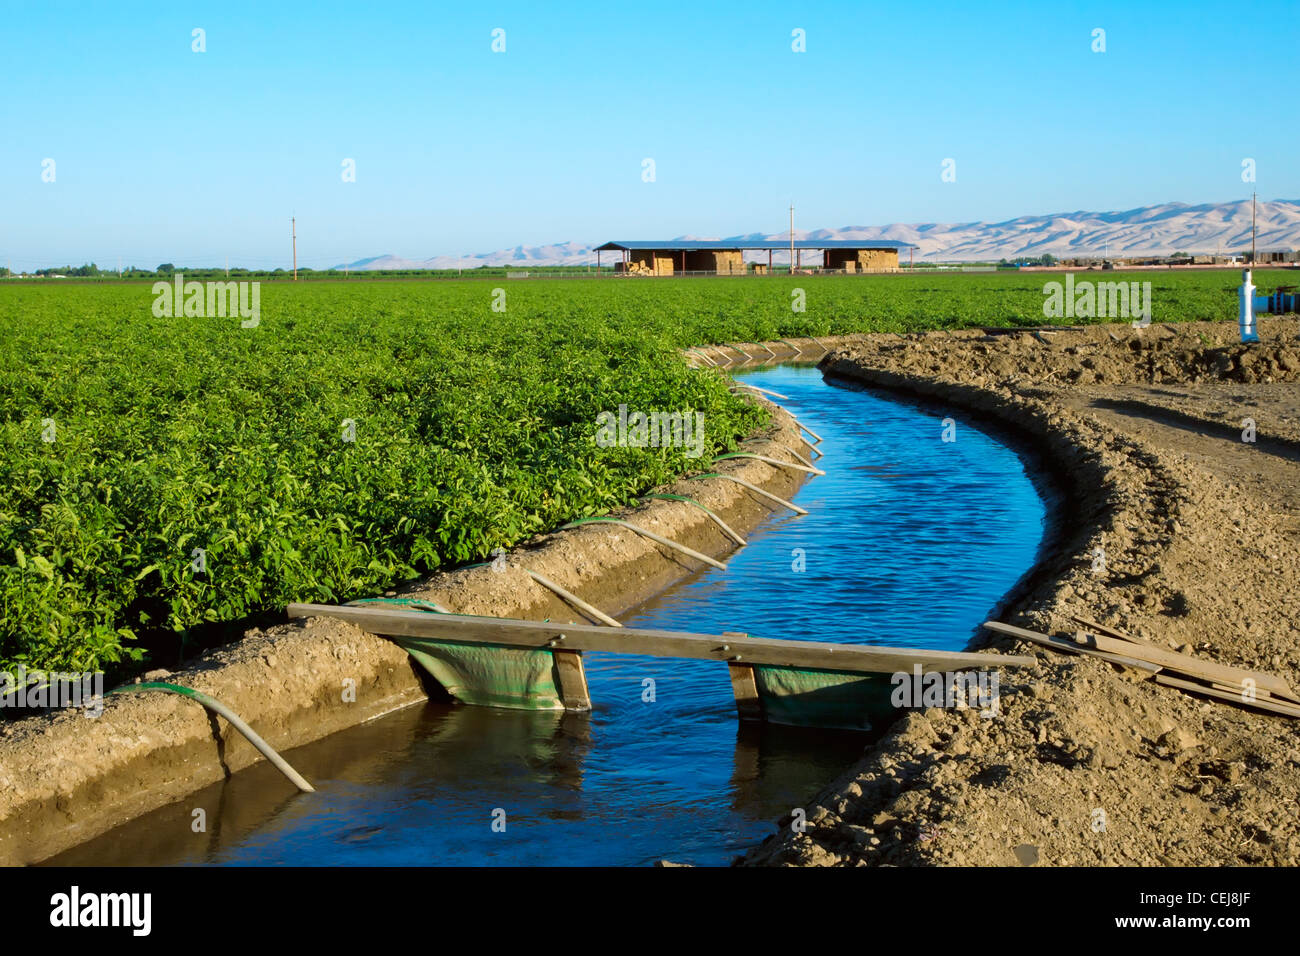 Agricultural Irrigation Canal : Agriculture irrigation canal running alongside a fresh